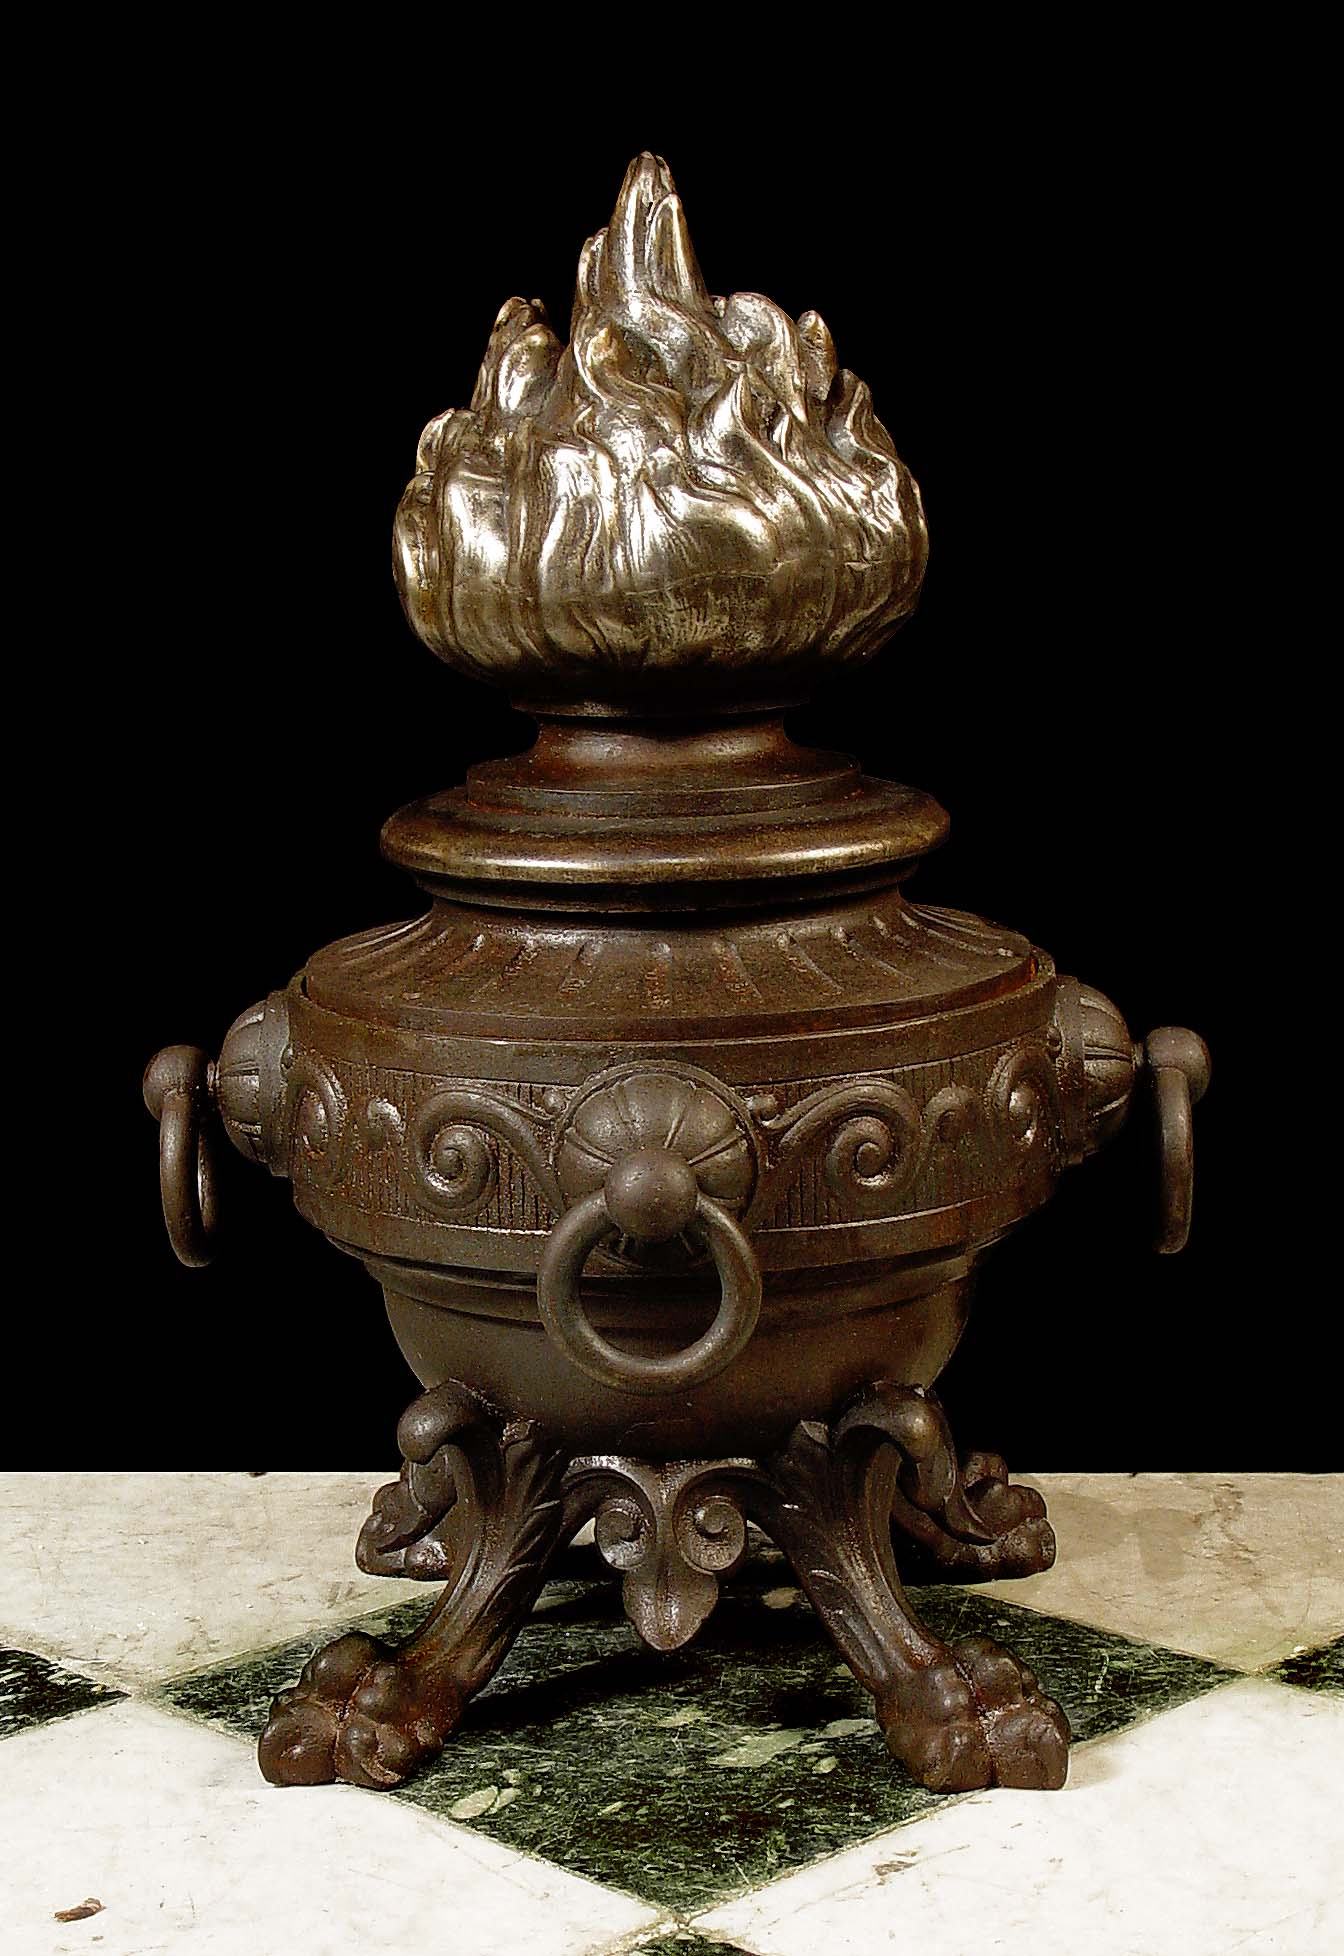 6477: A large cast iron Urn Torchere Finial in the Roman manner with flame top, four rings around the circumference and supported on four lion paw feet. French 19th century.  Link to: Antique sculptures, ca